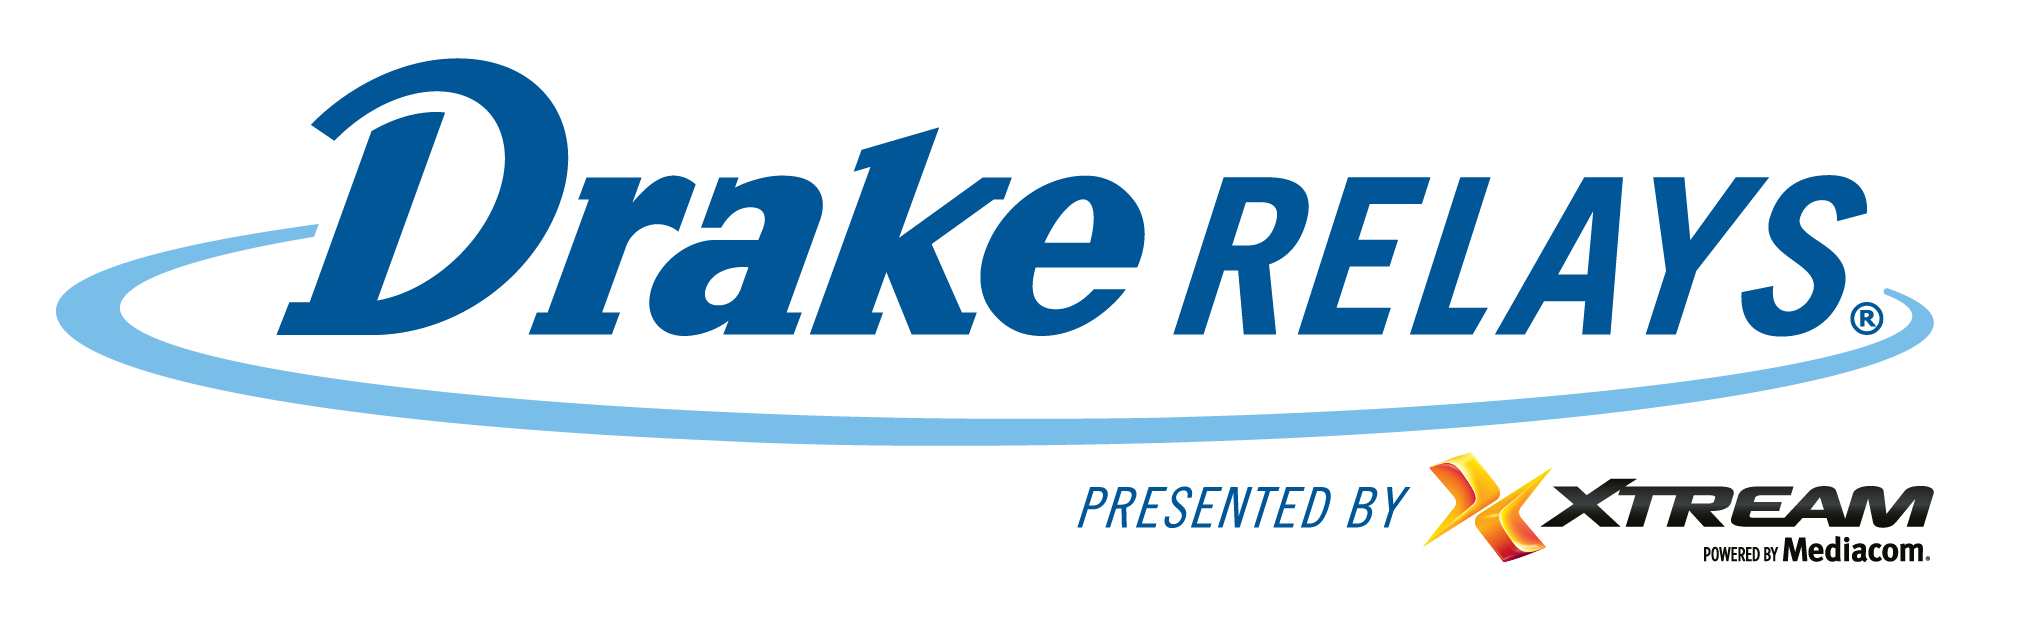 Drake Relays presented by Xtream powered by Mediacom (Des Moines, IA)